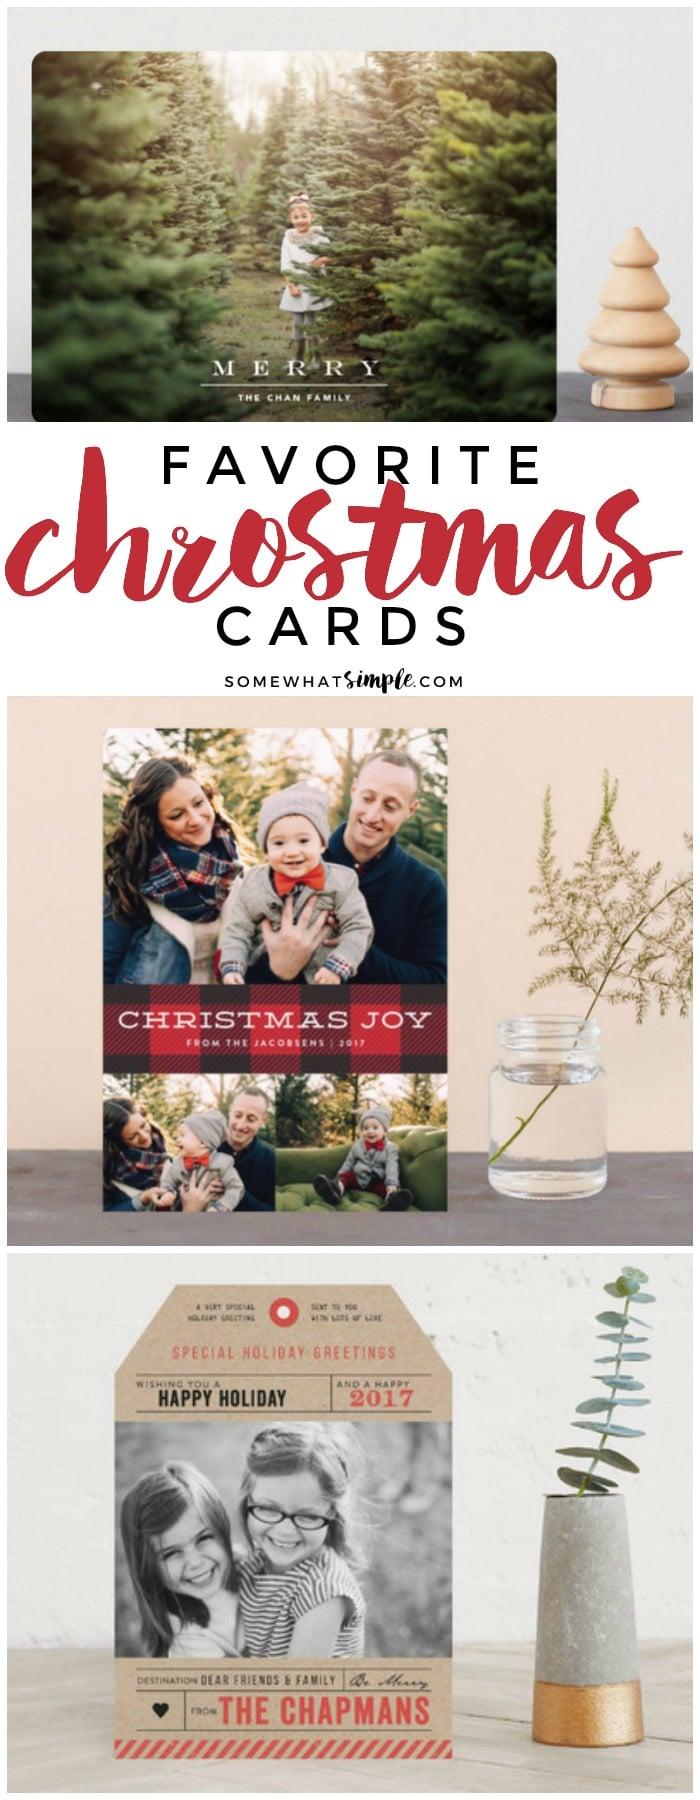 If you're in the market for your holiday cards, here are 10 of my very favorite designs! Good luck picking just one!